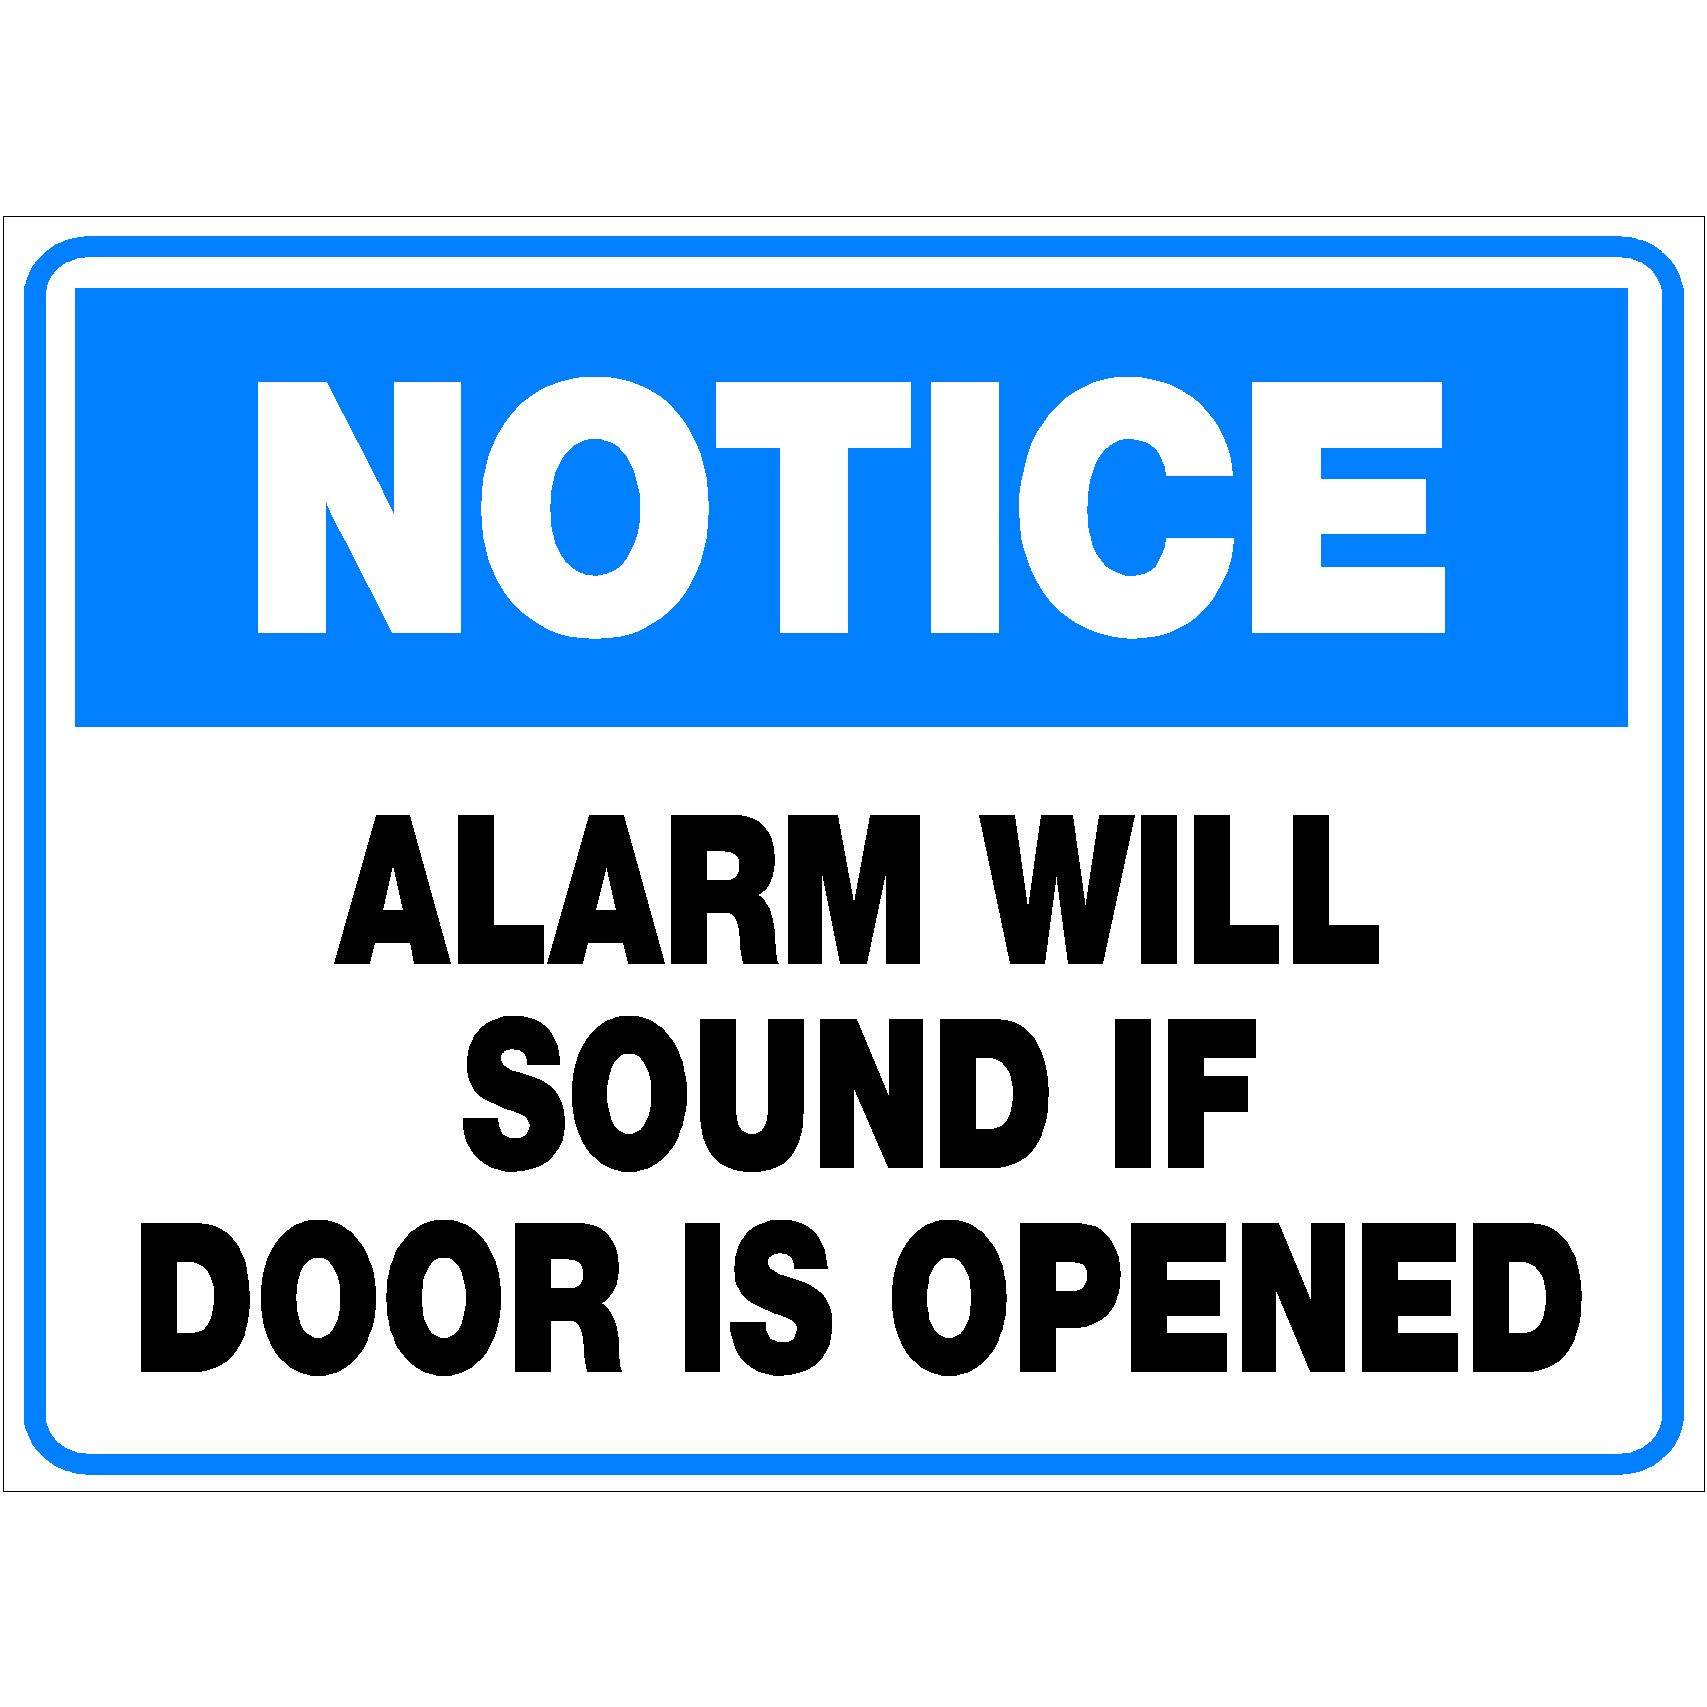 Notice Alarm will sound if door is opened